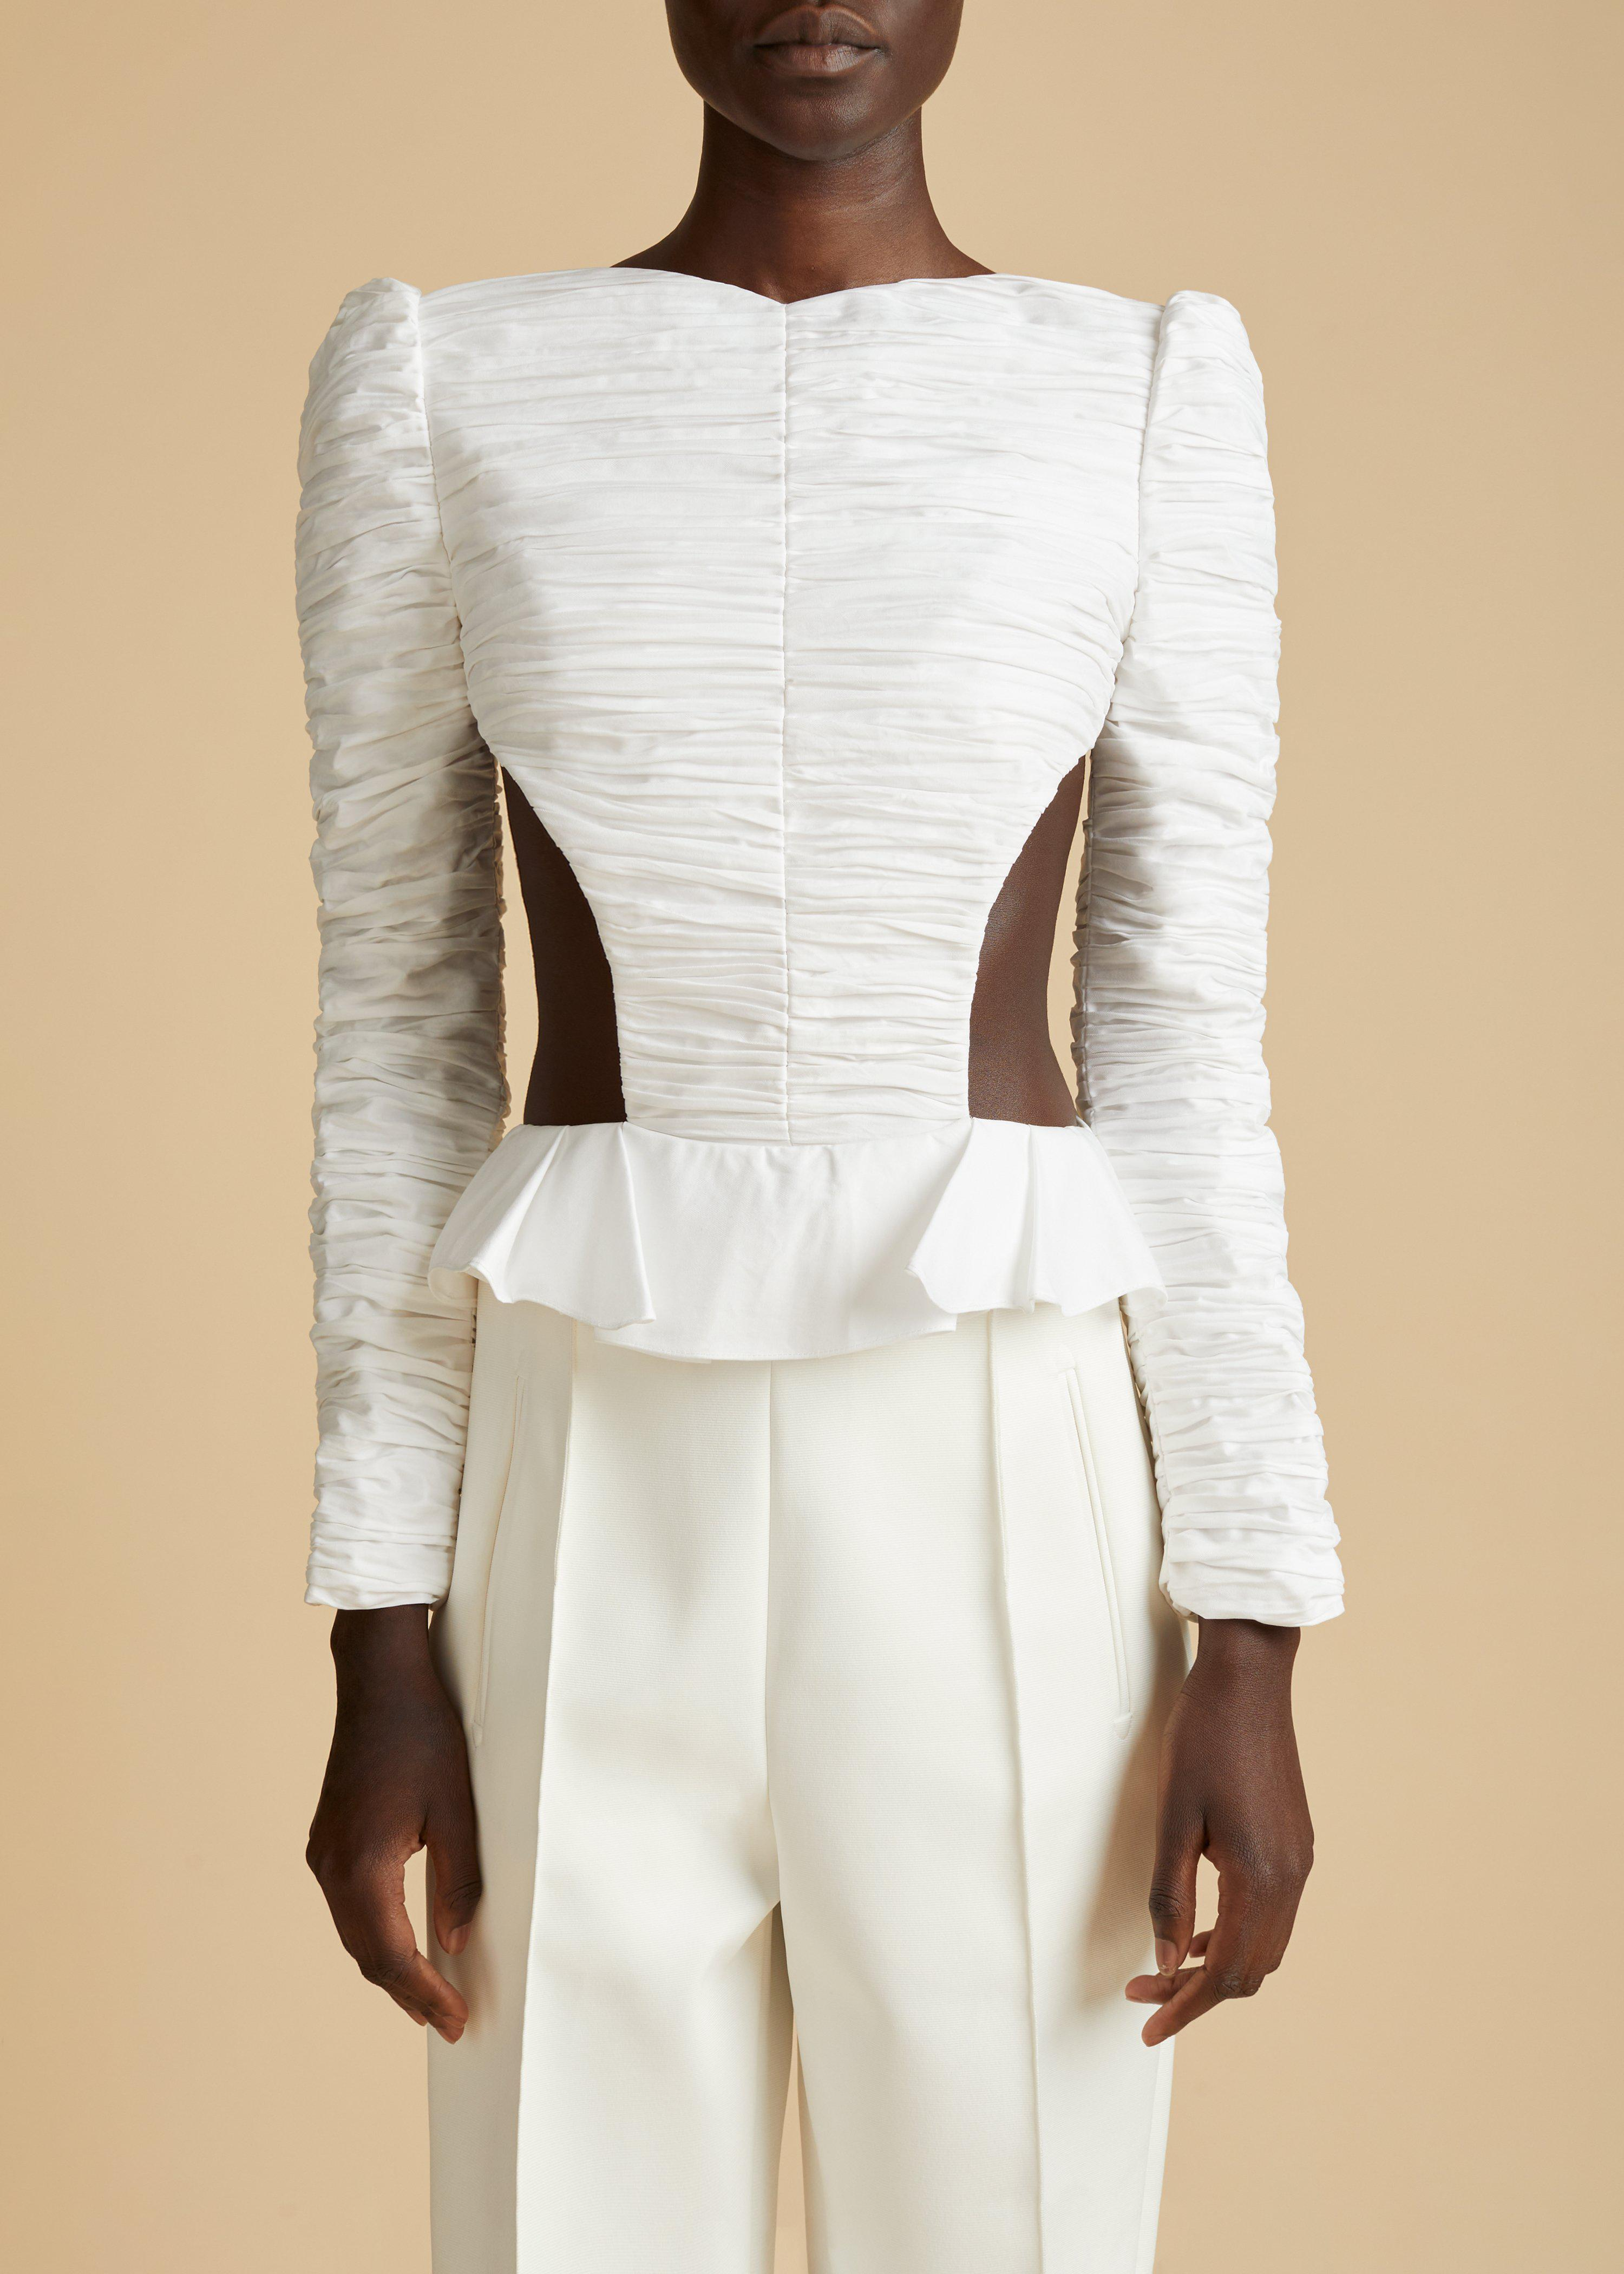 The Rosy Top in White